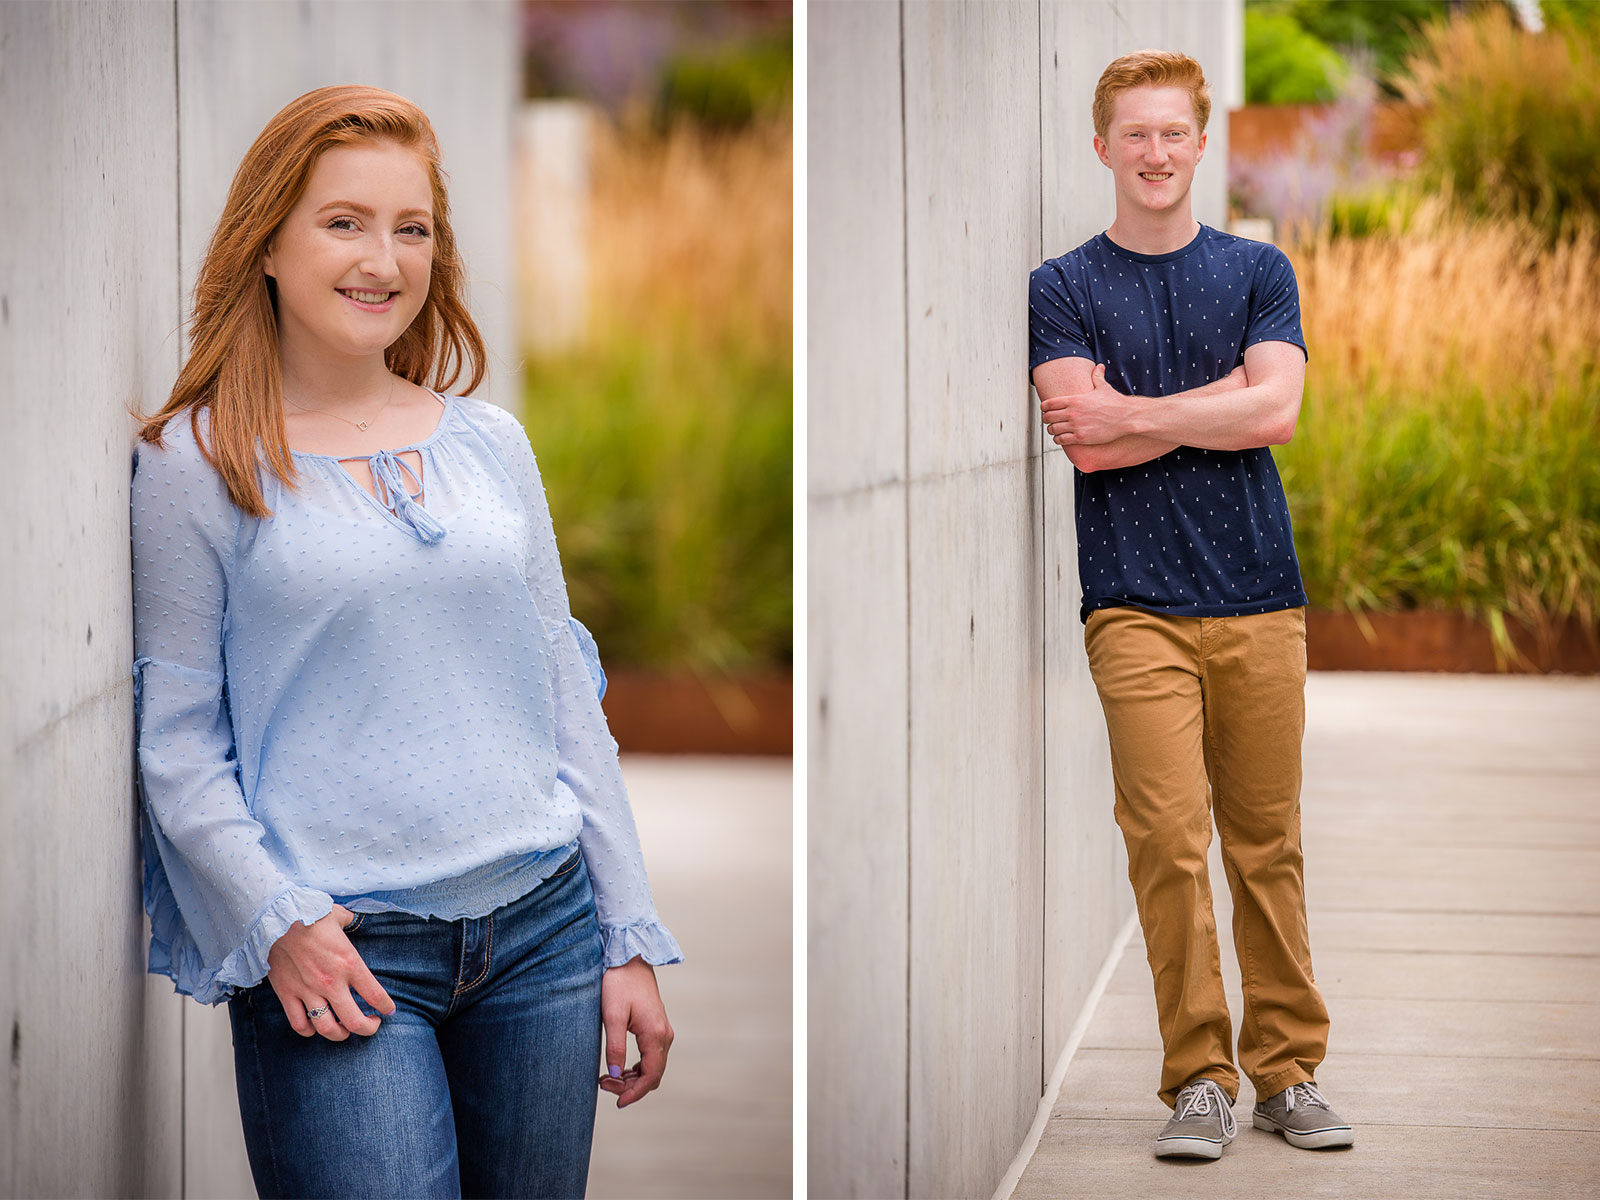 Eric_and_Christy_Photography_Blog_Brenna_Dray_Grad-18-19